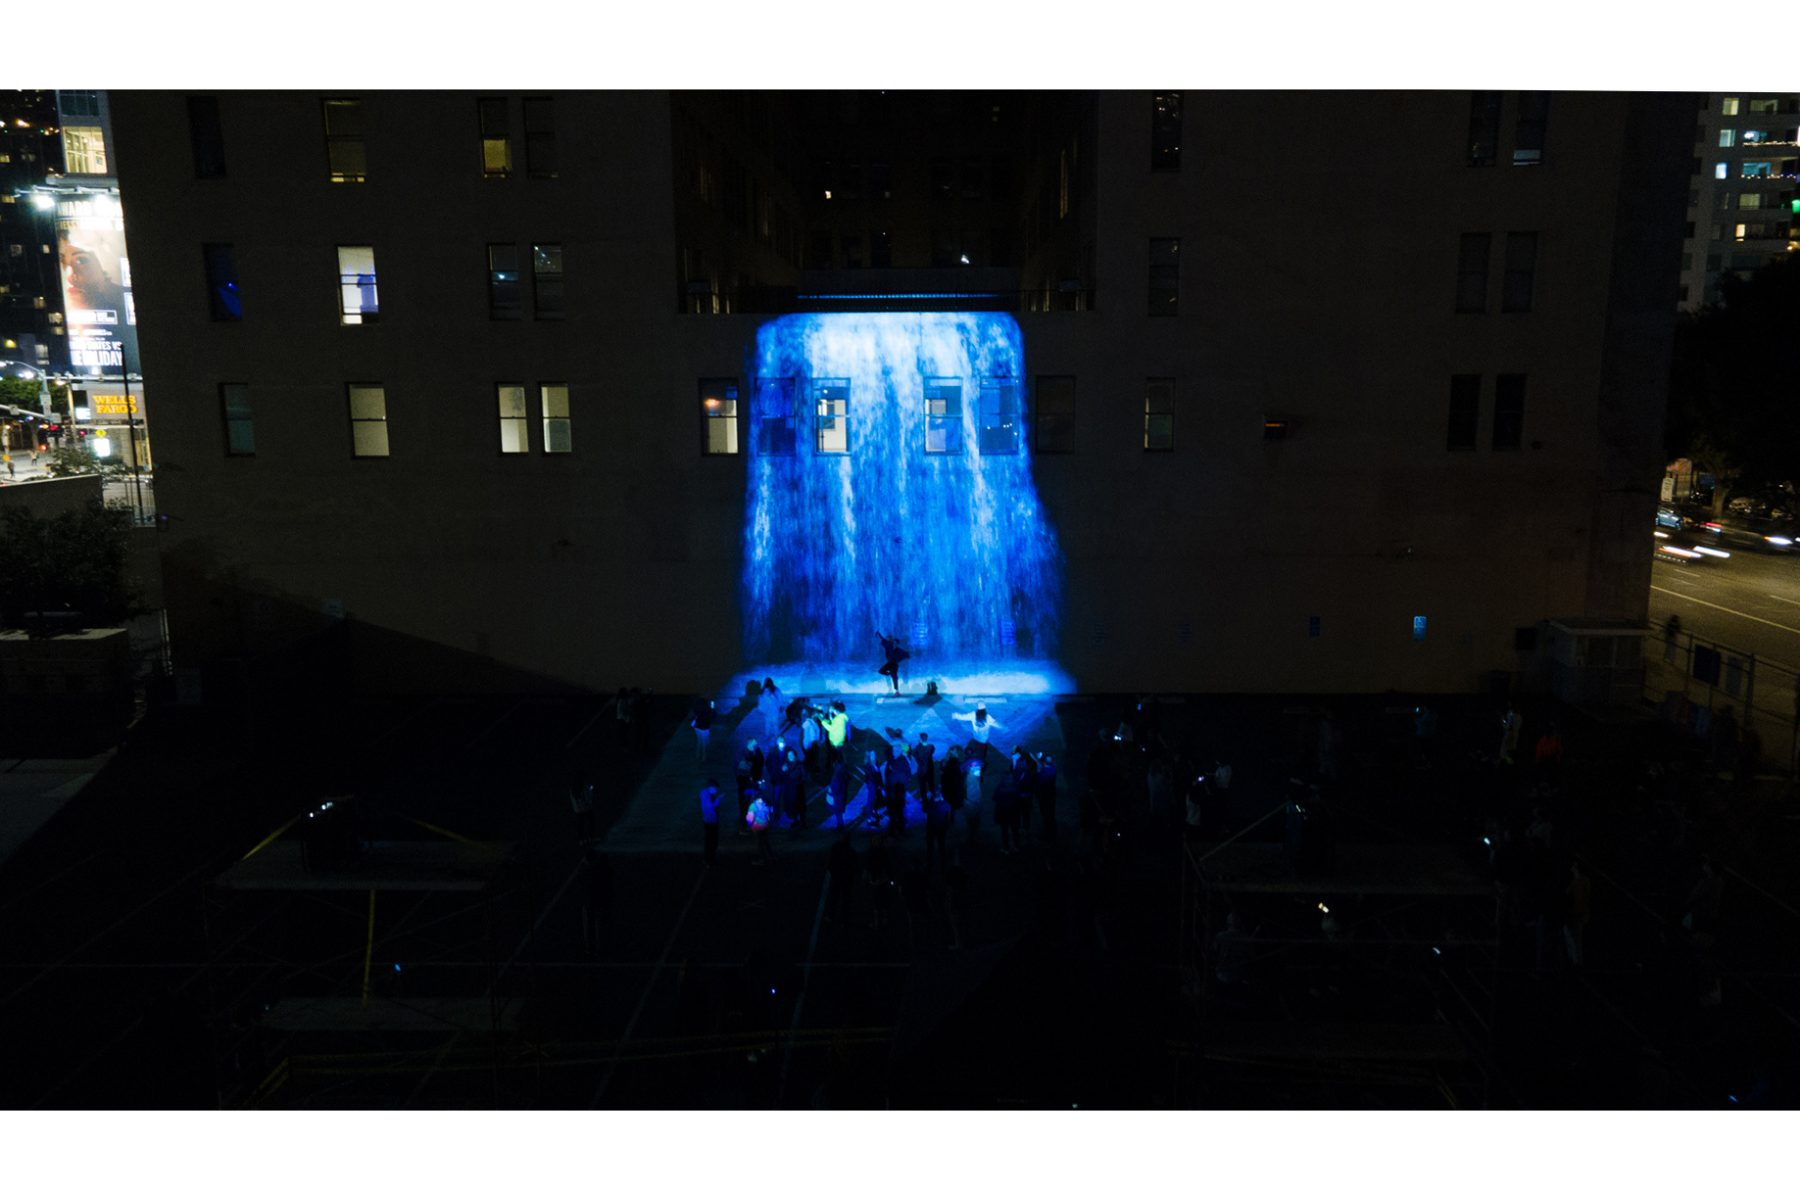 Luciana Abait, Agua, 2021. 31 feet high x 37 feet wide. Site specific video projection. Installation view at Petroleum Securities Building, Downtown Los Angeles, LUMINEX. Courtesy of the artist.